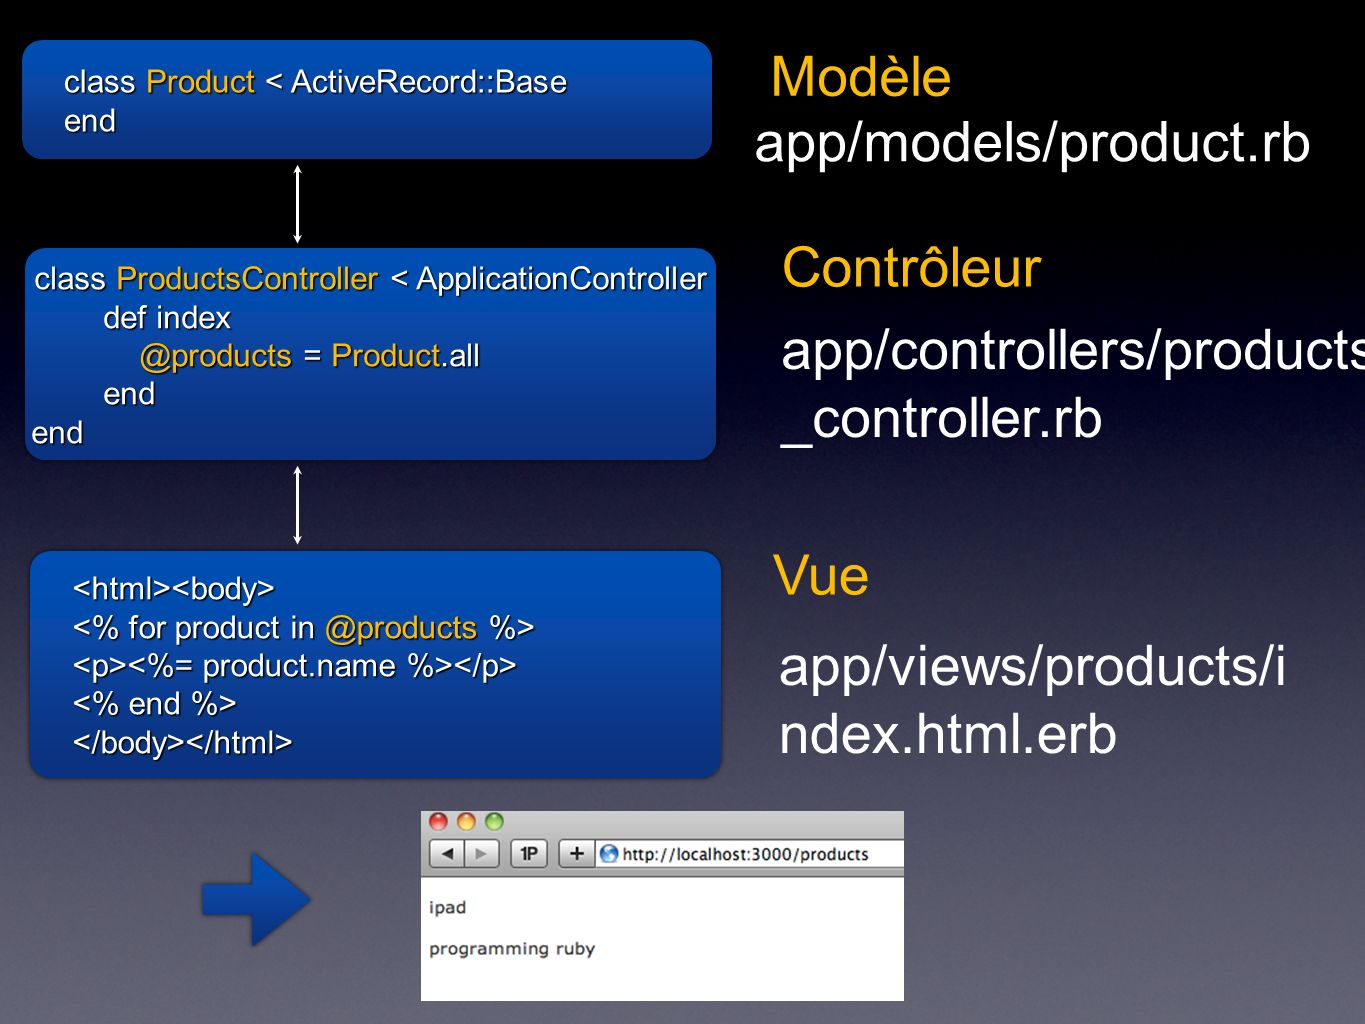 class Product < ActiveRecord::Base end end Modèle app/models/product.rb class ProductsController < ApplicationController def index @products = Product.all endend class ProductsController < ApplicationController def index @products = Product.all endend Contrôleur app/controllers/products _controller.rb <html><body> </body></html><html><body> </body></html> Vue app/views/products/i ndex.html.erb